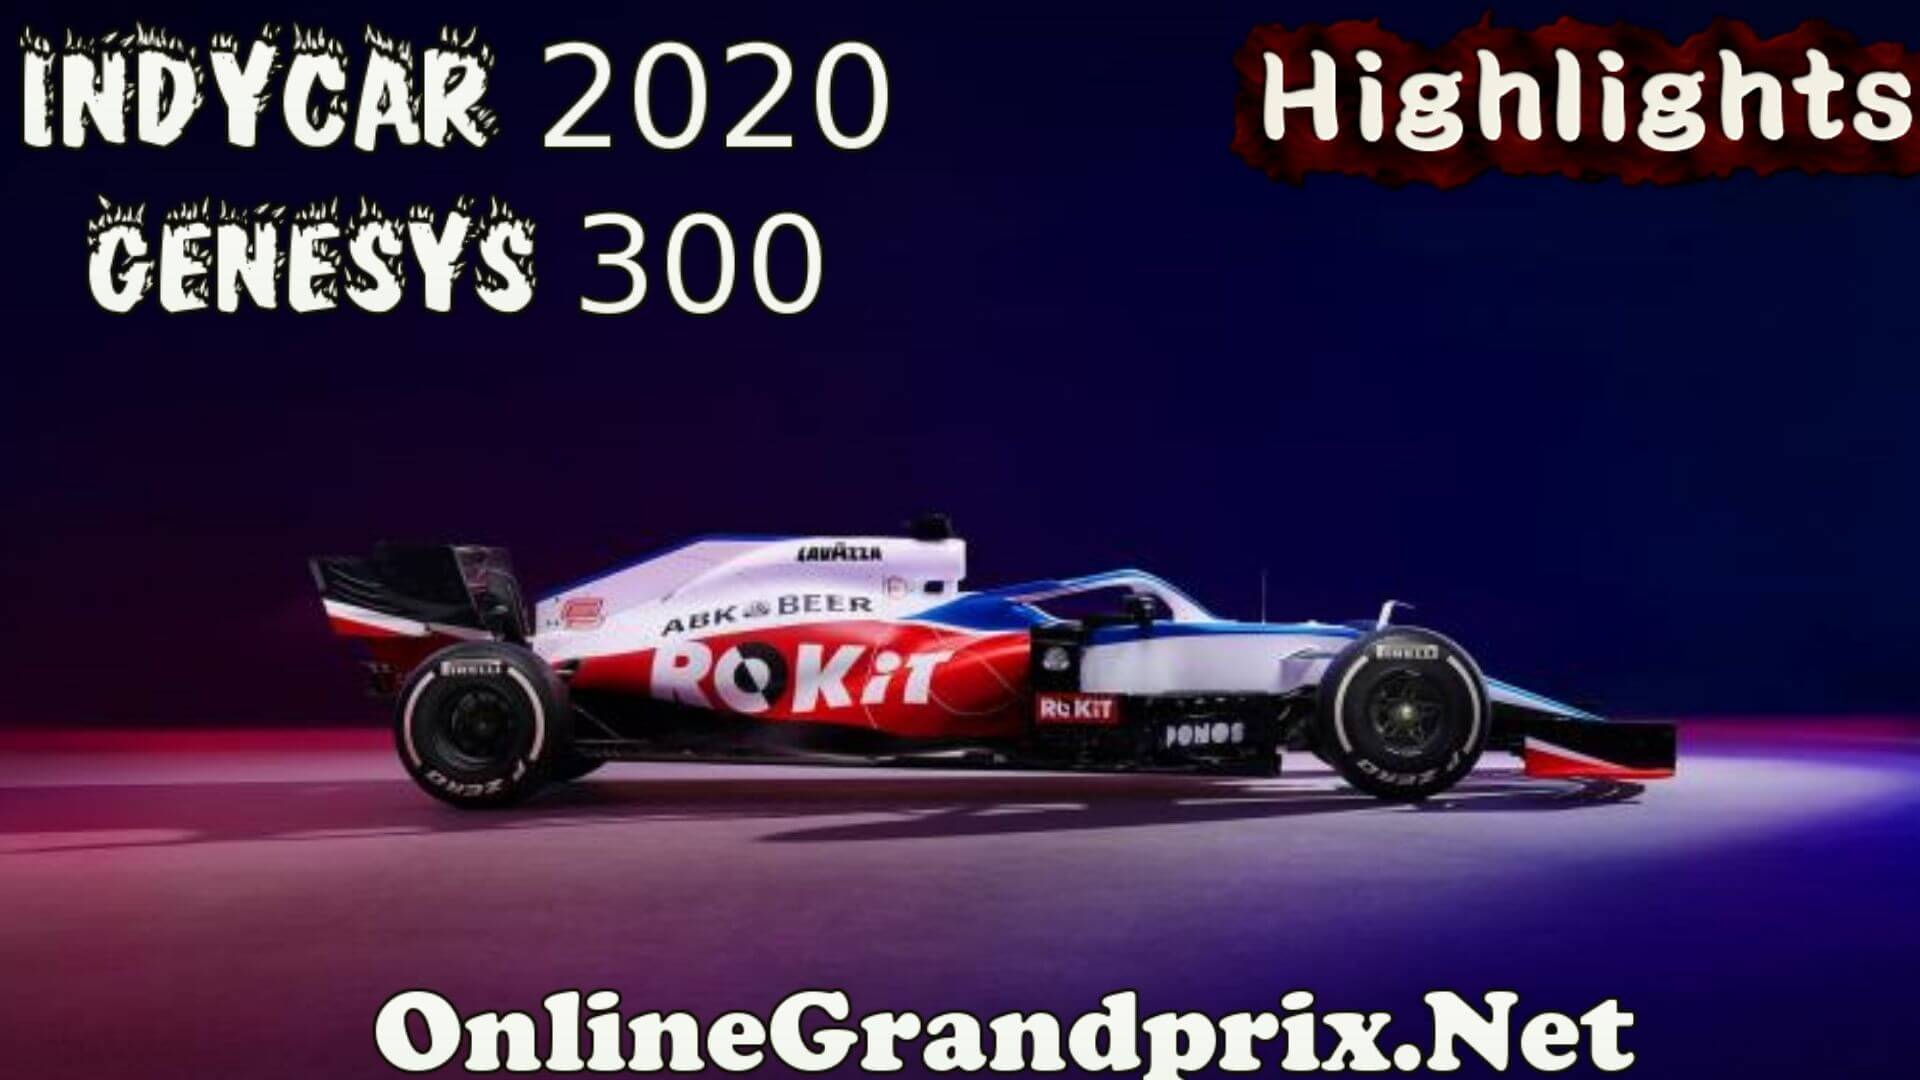 Genesys 300 Highlights Indycar 2020